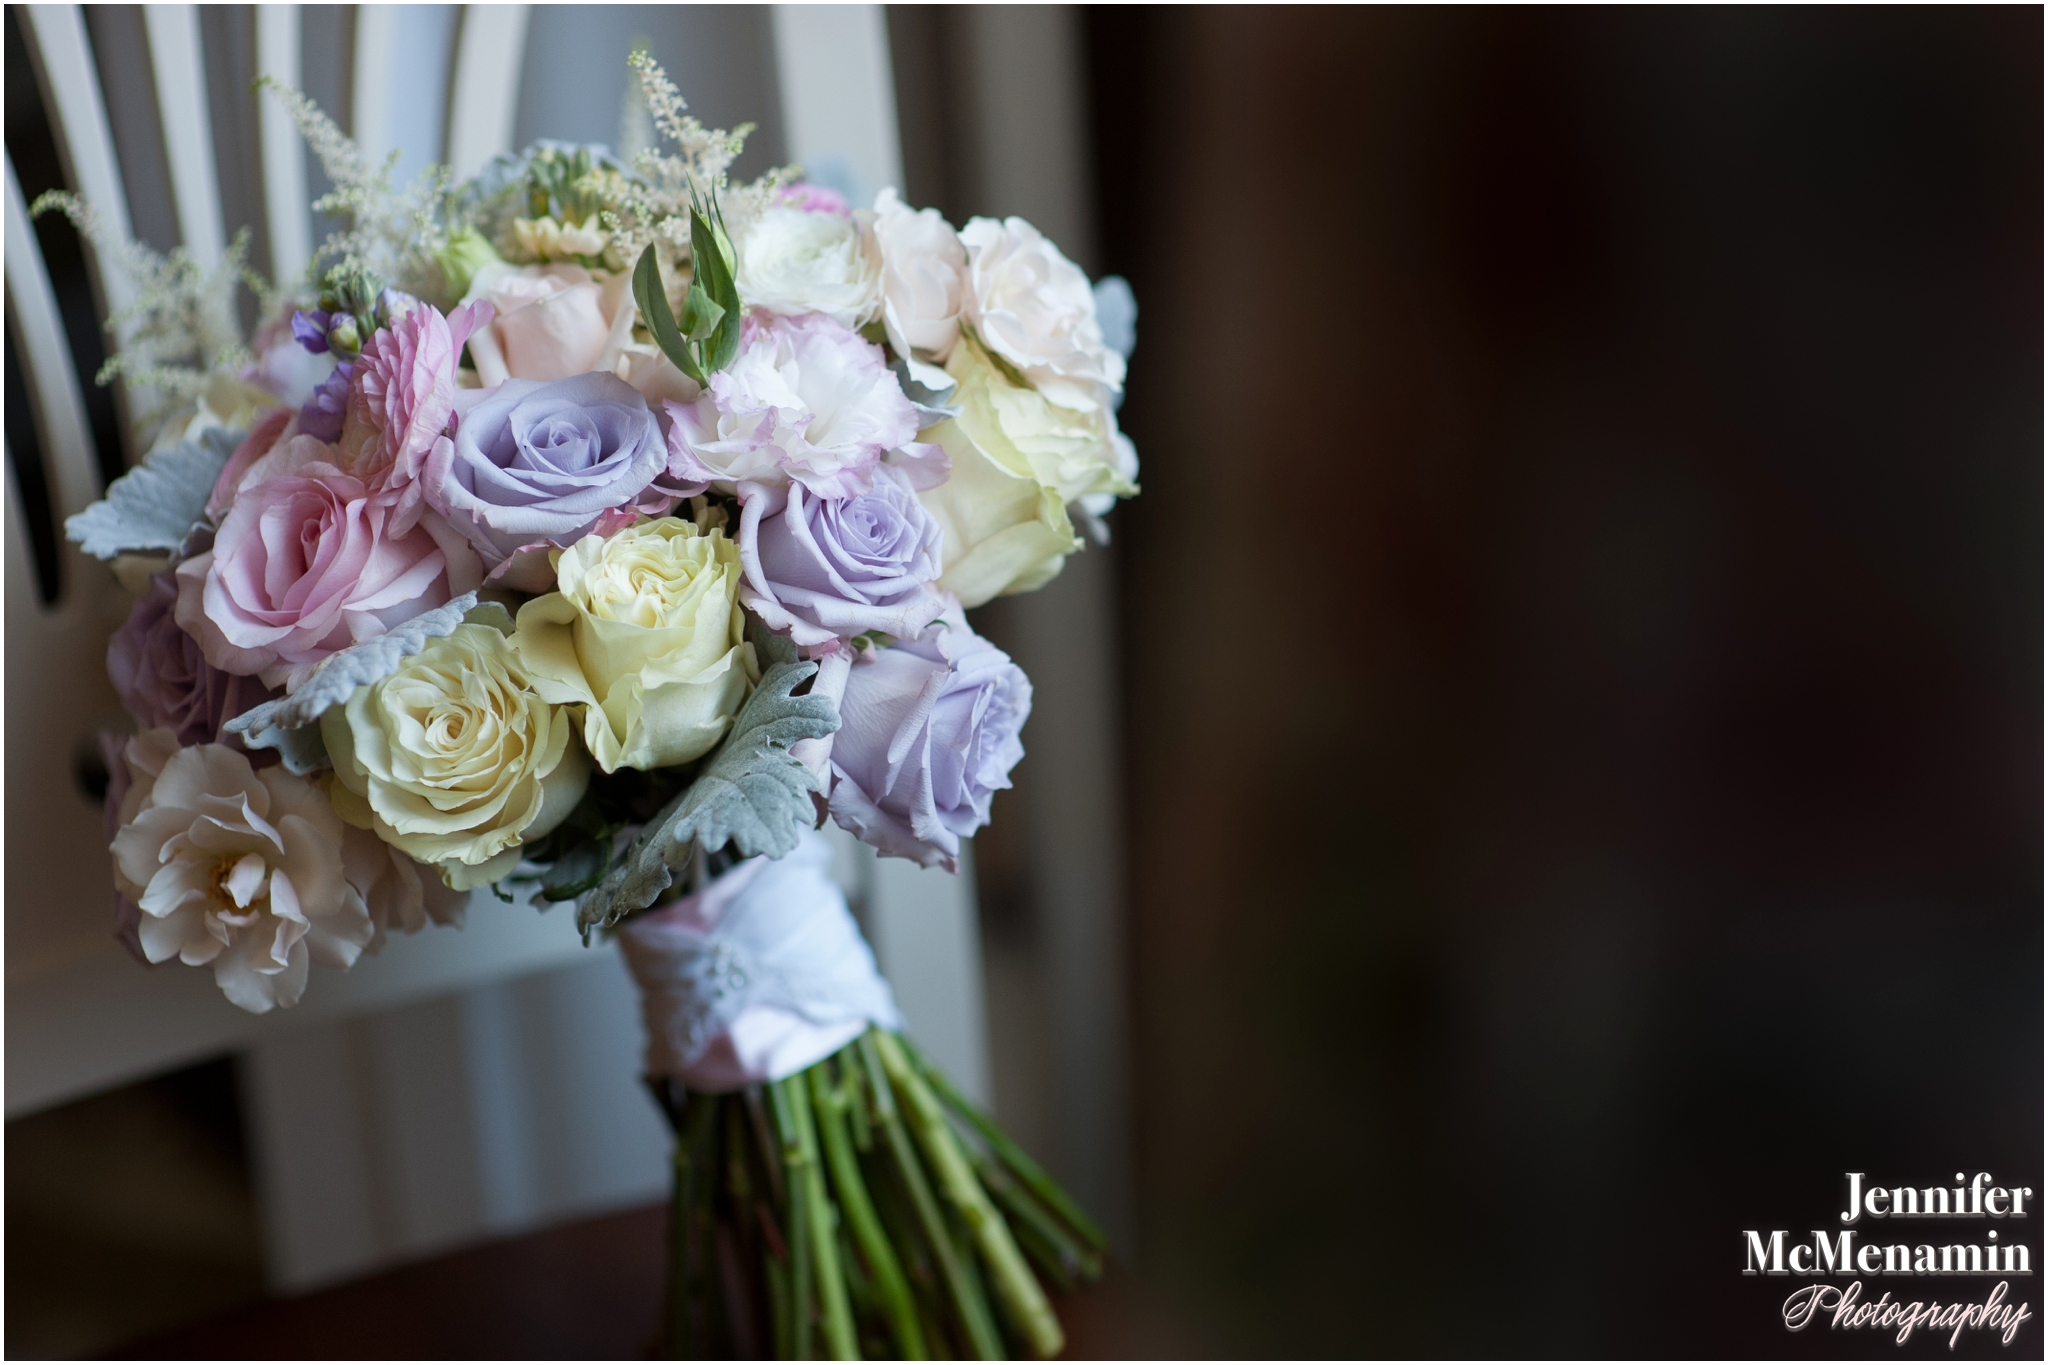 0004-WebbSlivnick_00110-0019_JenniferMcMenaminPhotography_George-Peabody-Library-wedding_Baltimore-wedding-photography_Baltimore-wedding-photographer